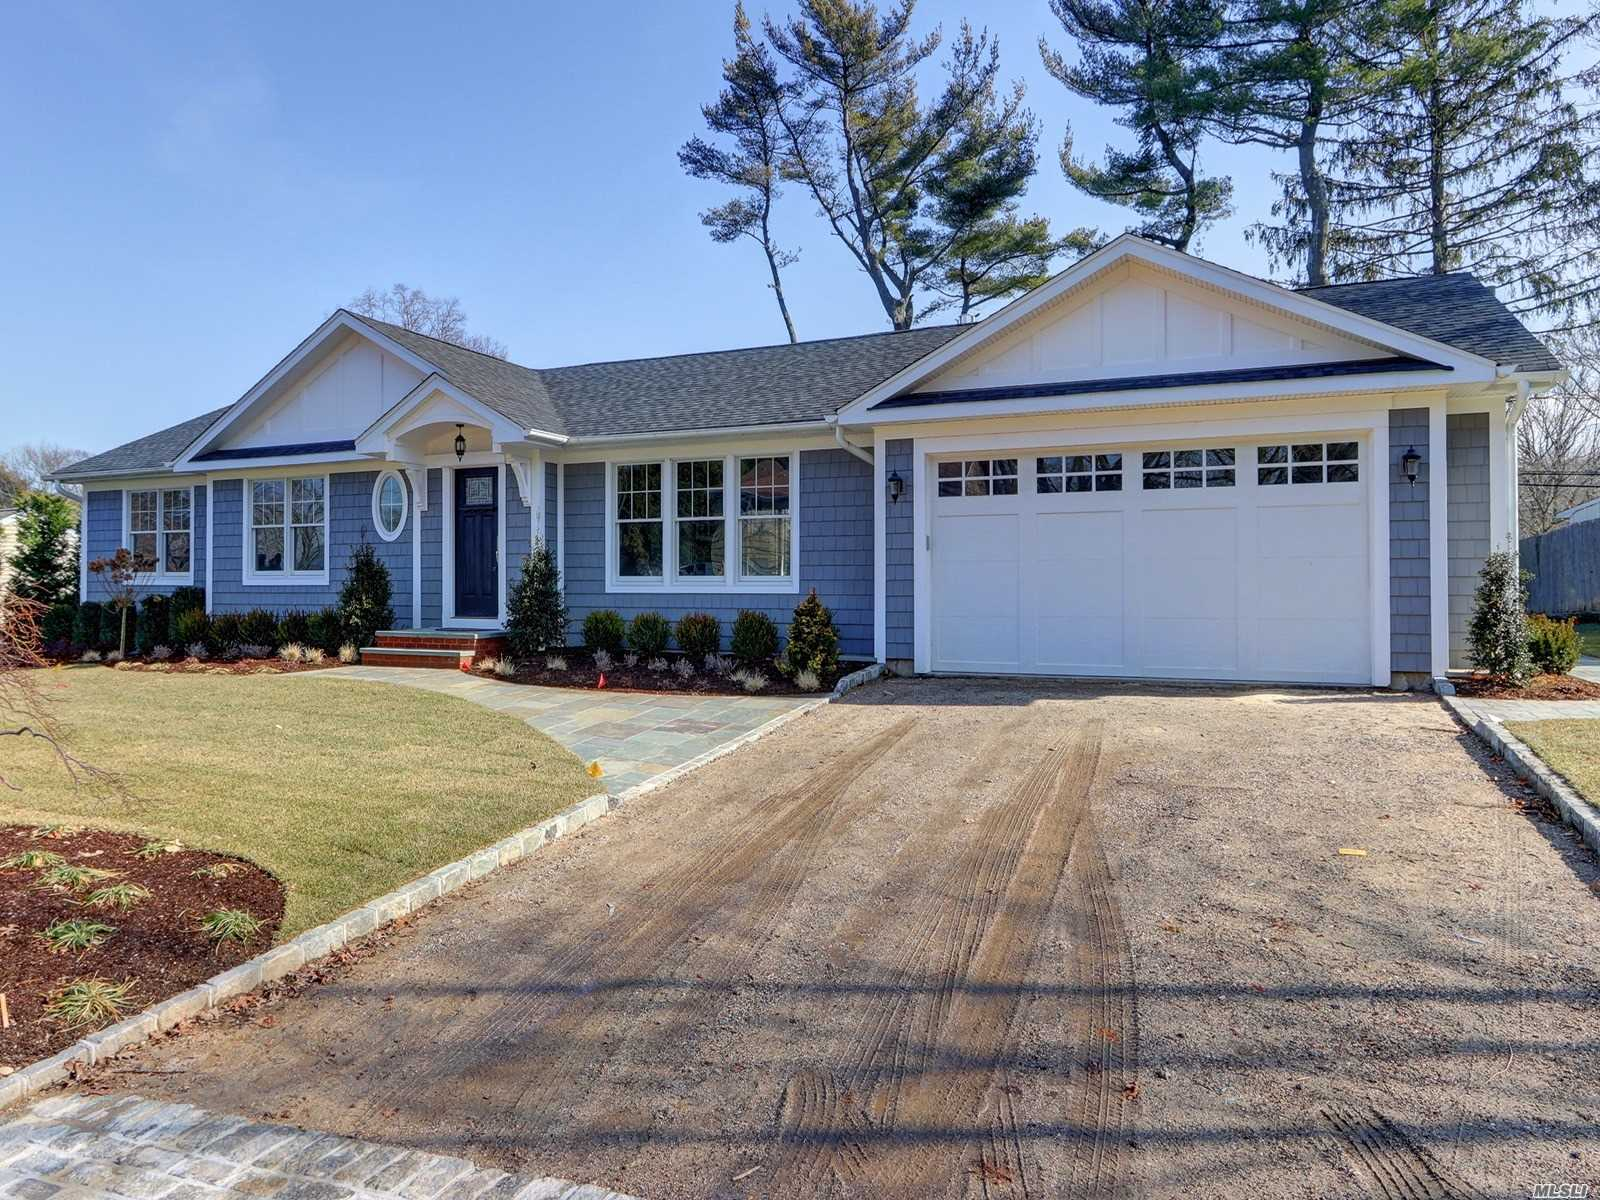 Photo of home for sale at 5 Saylor Pl, Huntington NY